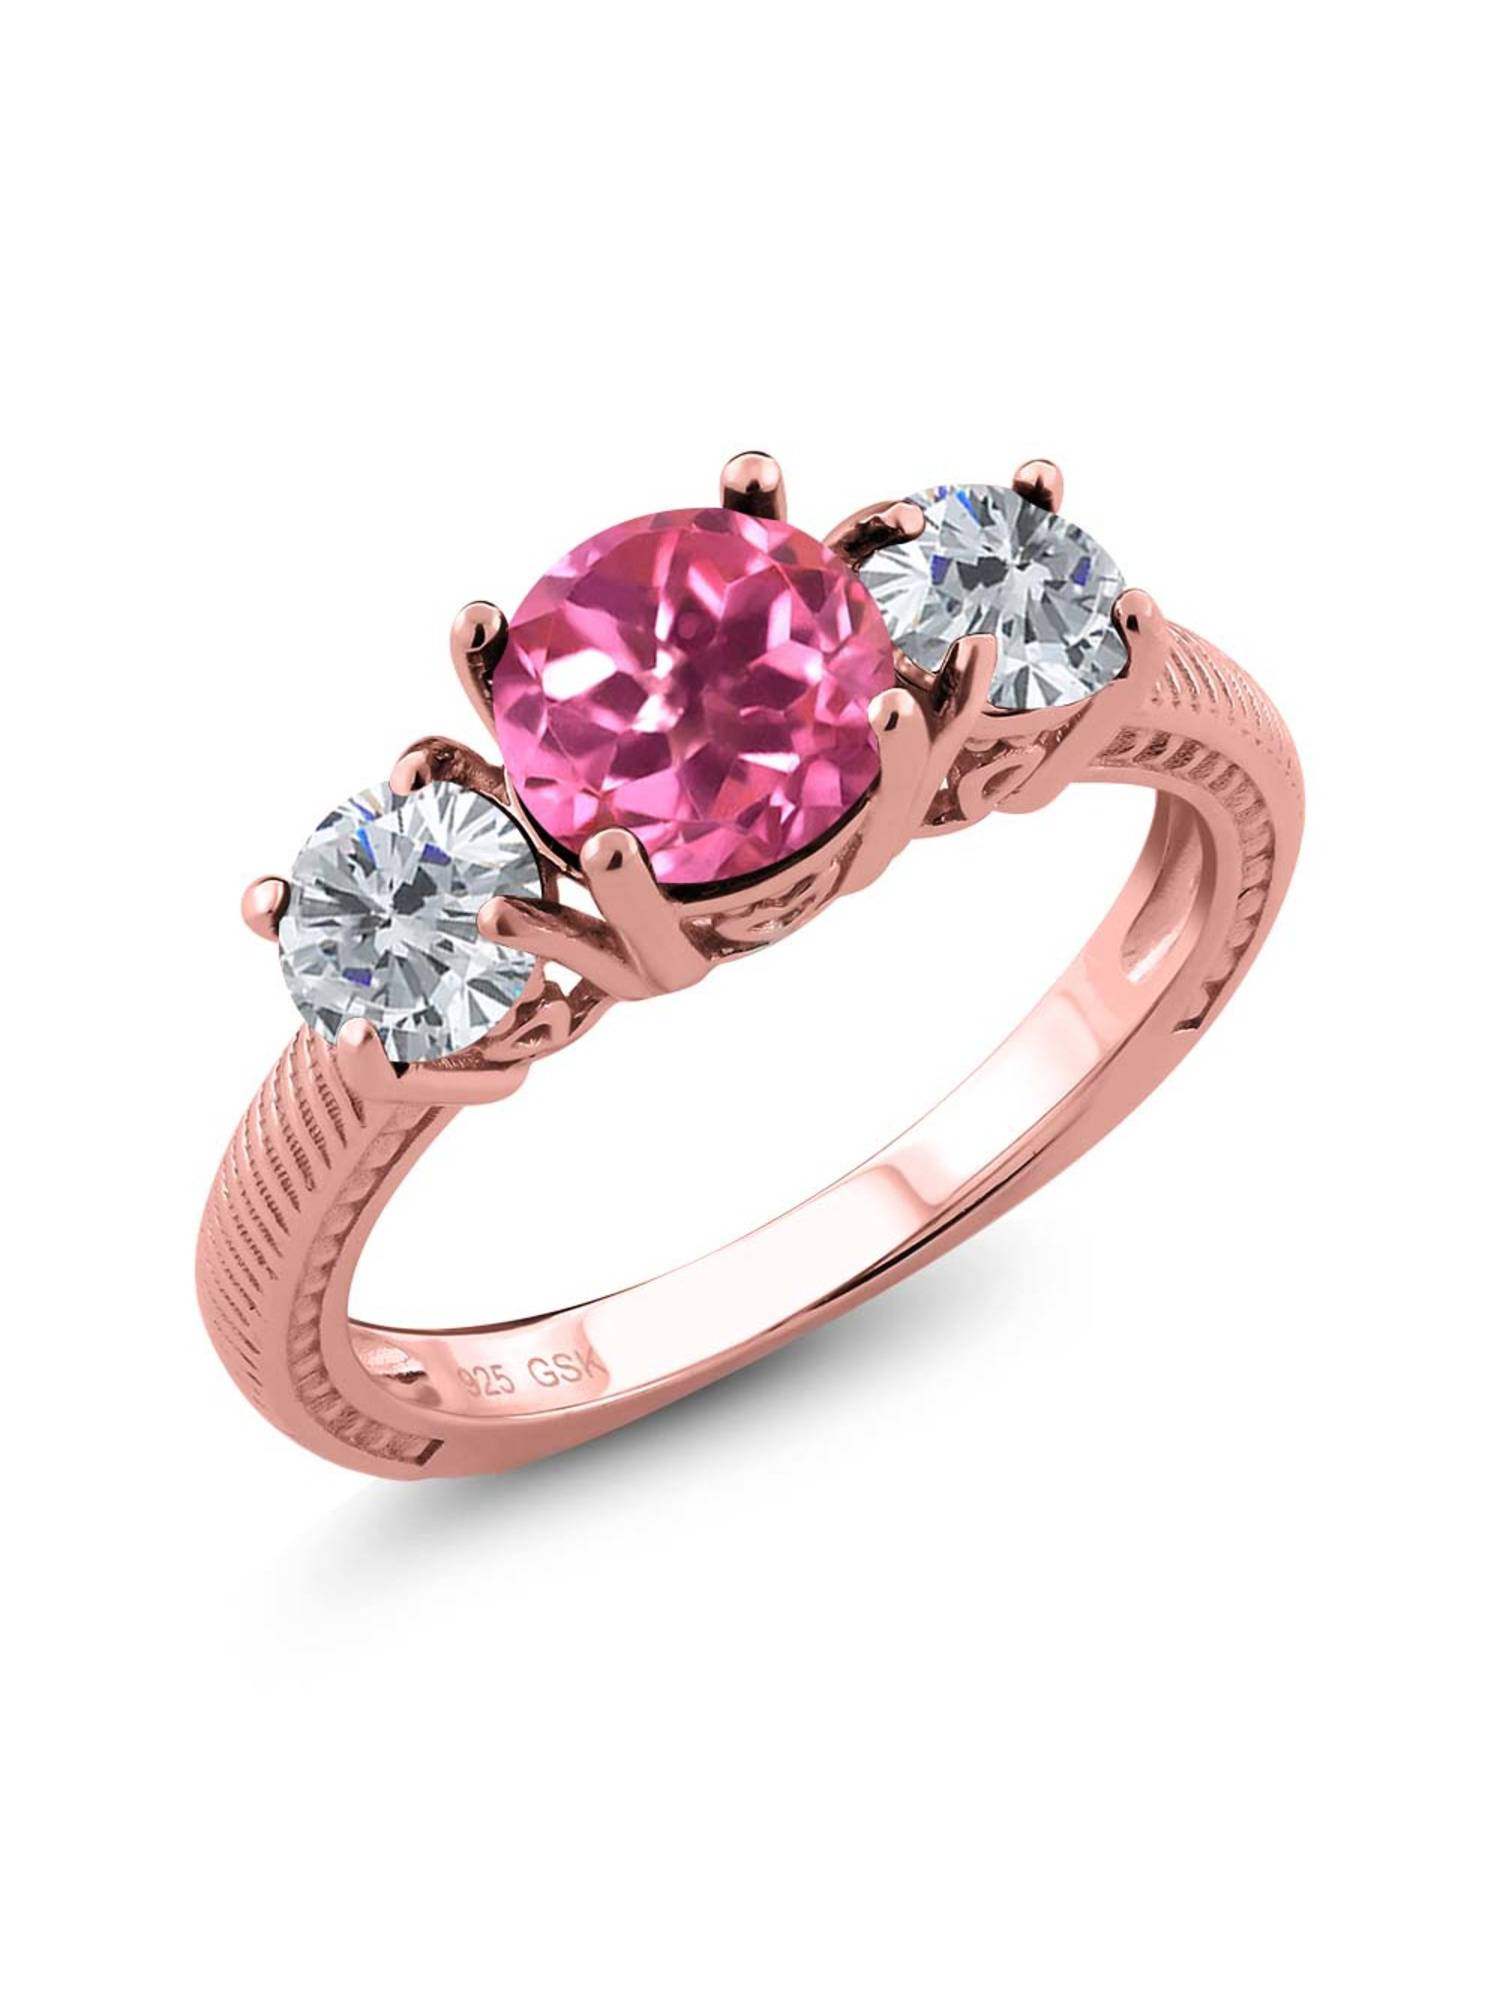 2.30 Ct Round Pink Mystic Topaz G H Diamond 18K Rose Gold Plated Silver 3 Stone Ring by